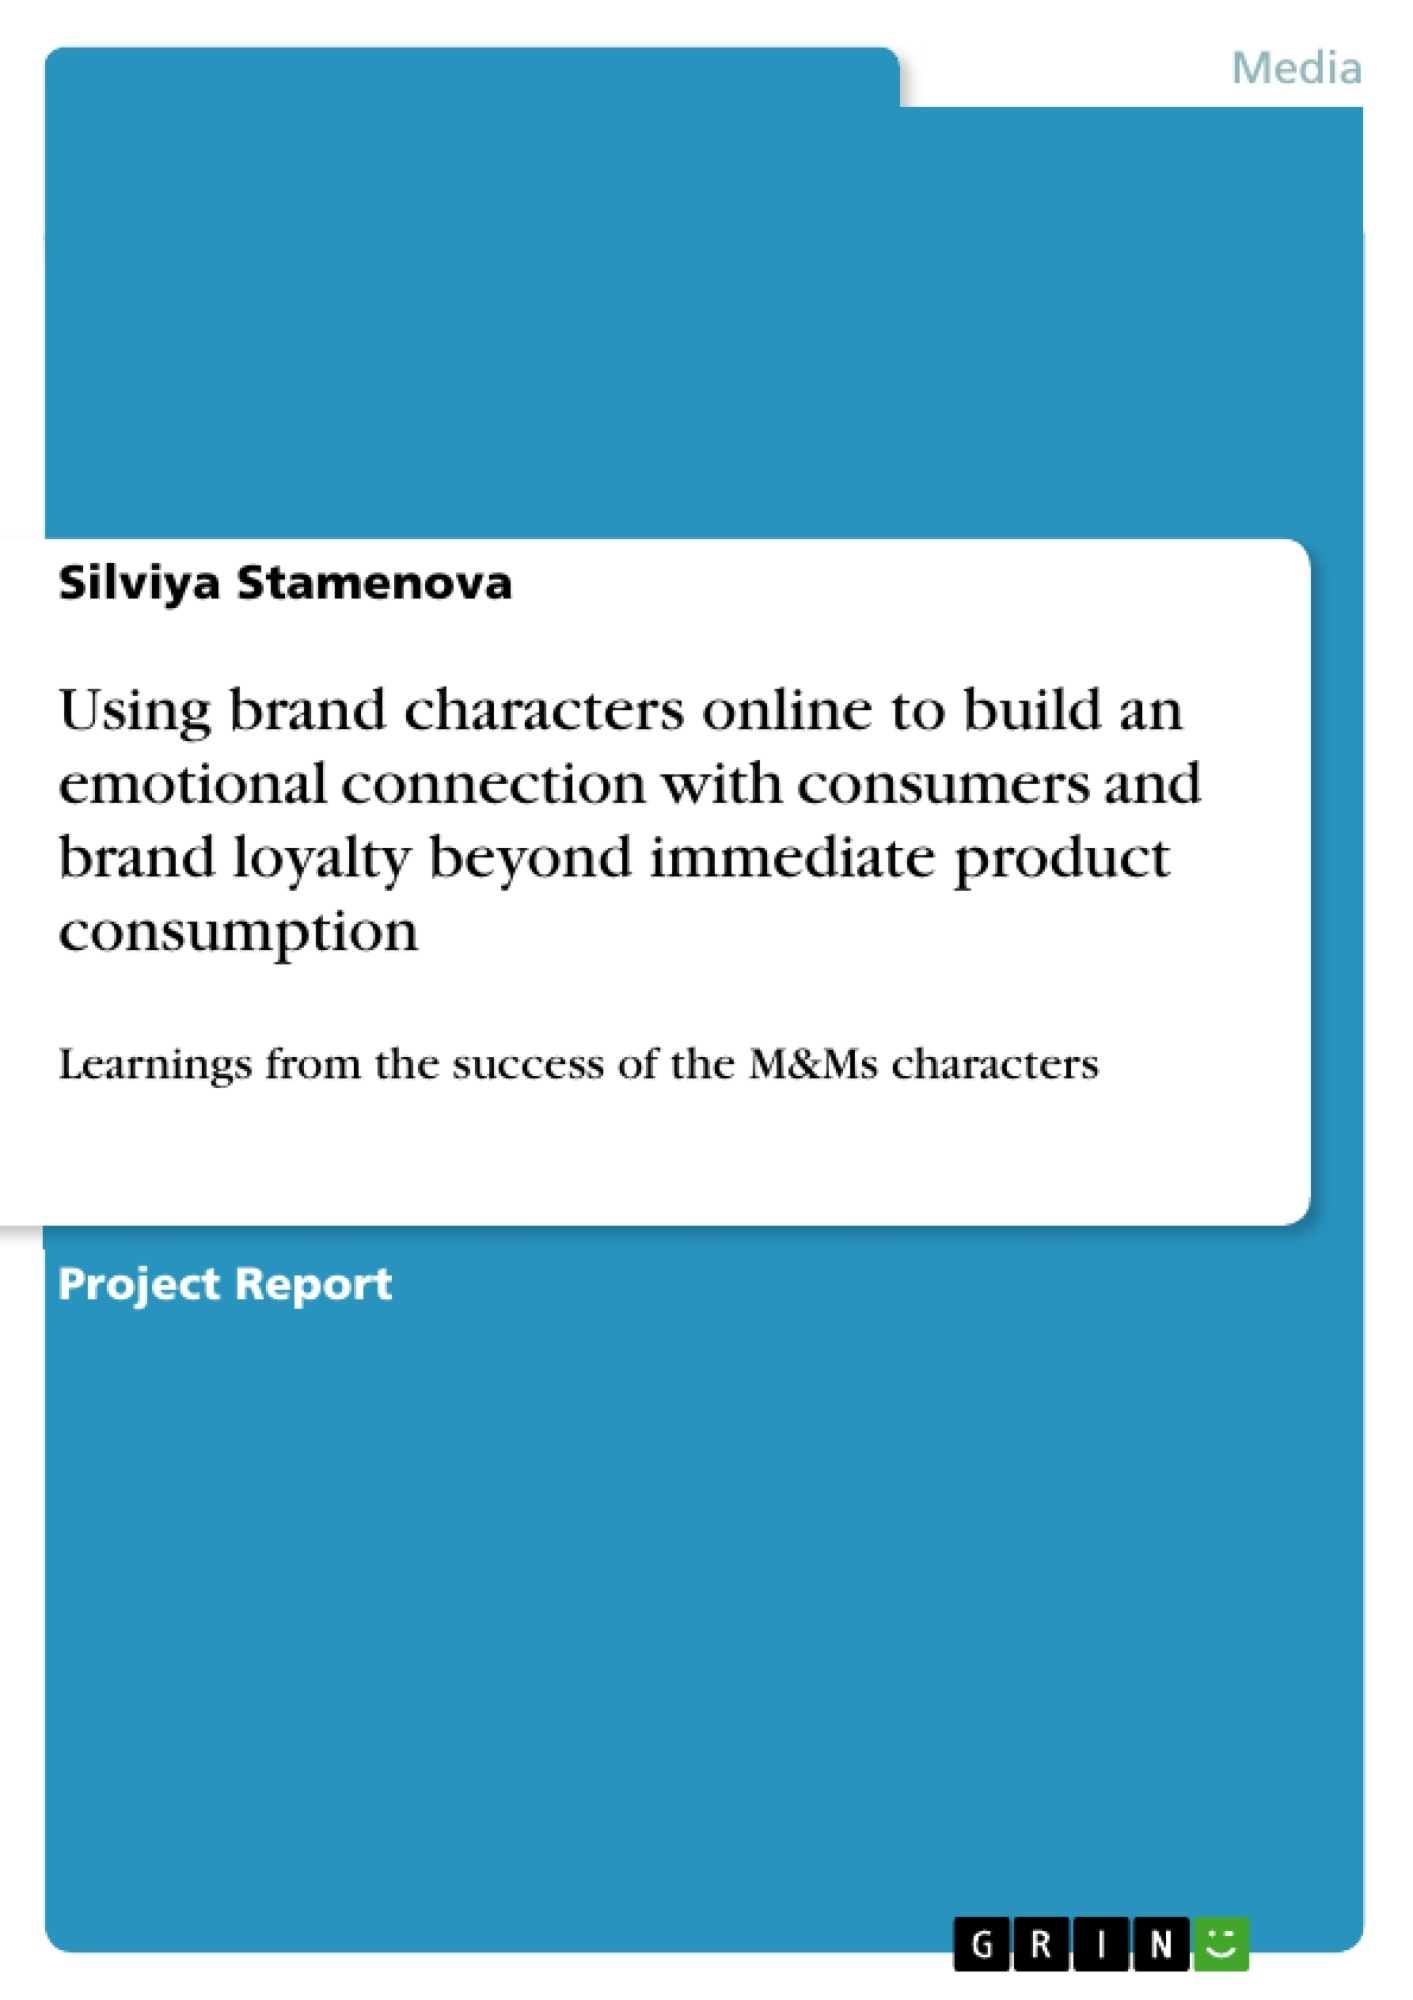 Title: Using brand characters online to build an emotional connection with consumers and brand loyalty beyond immediate product consumption